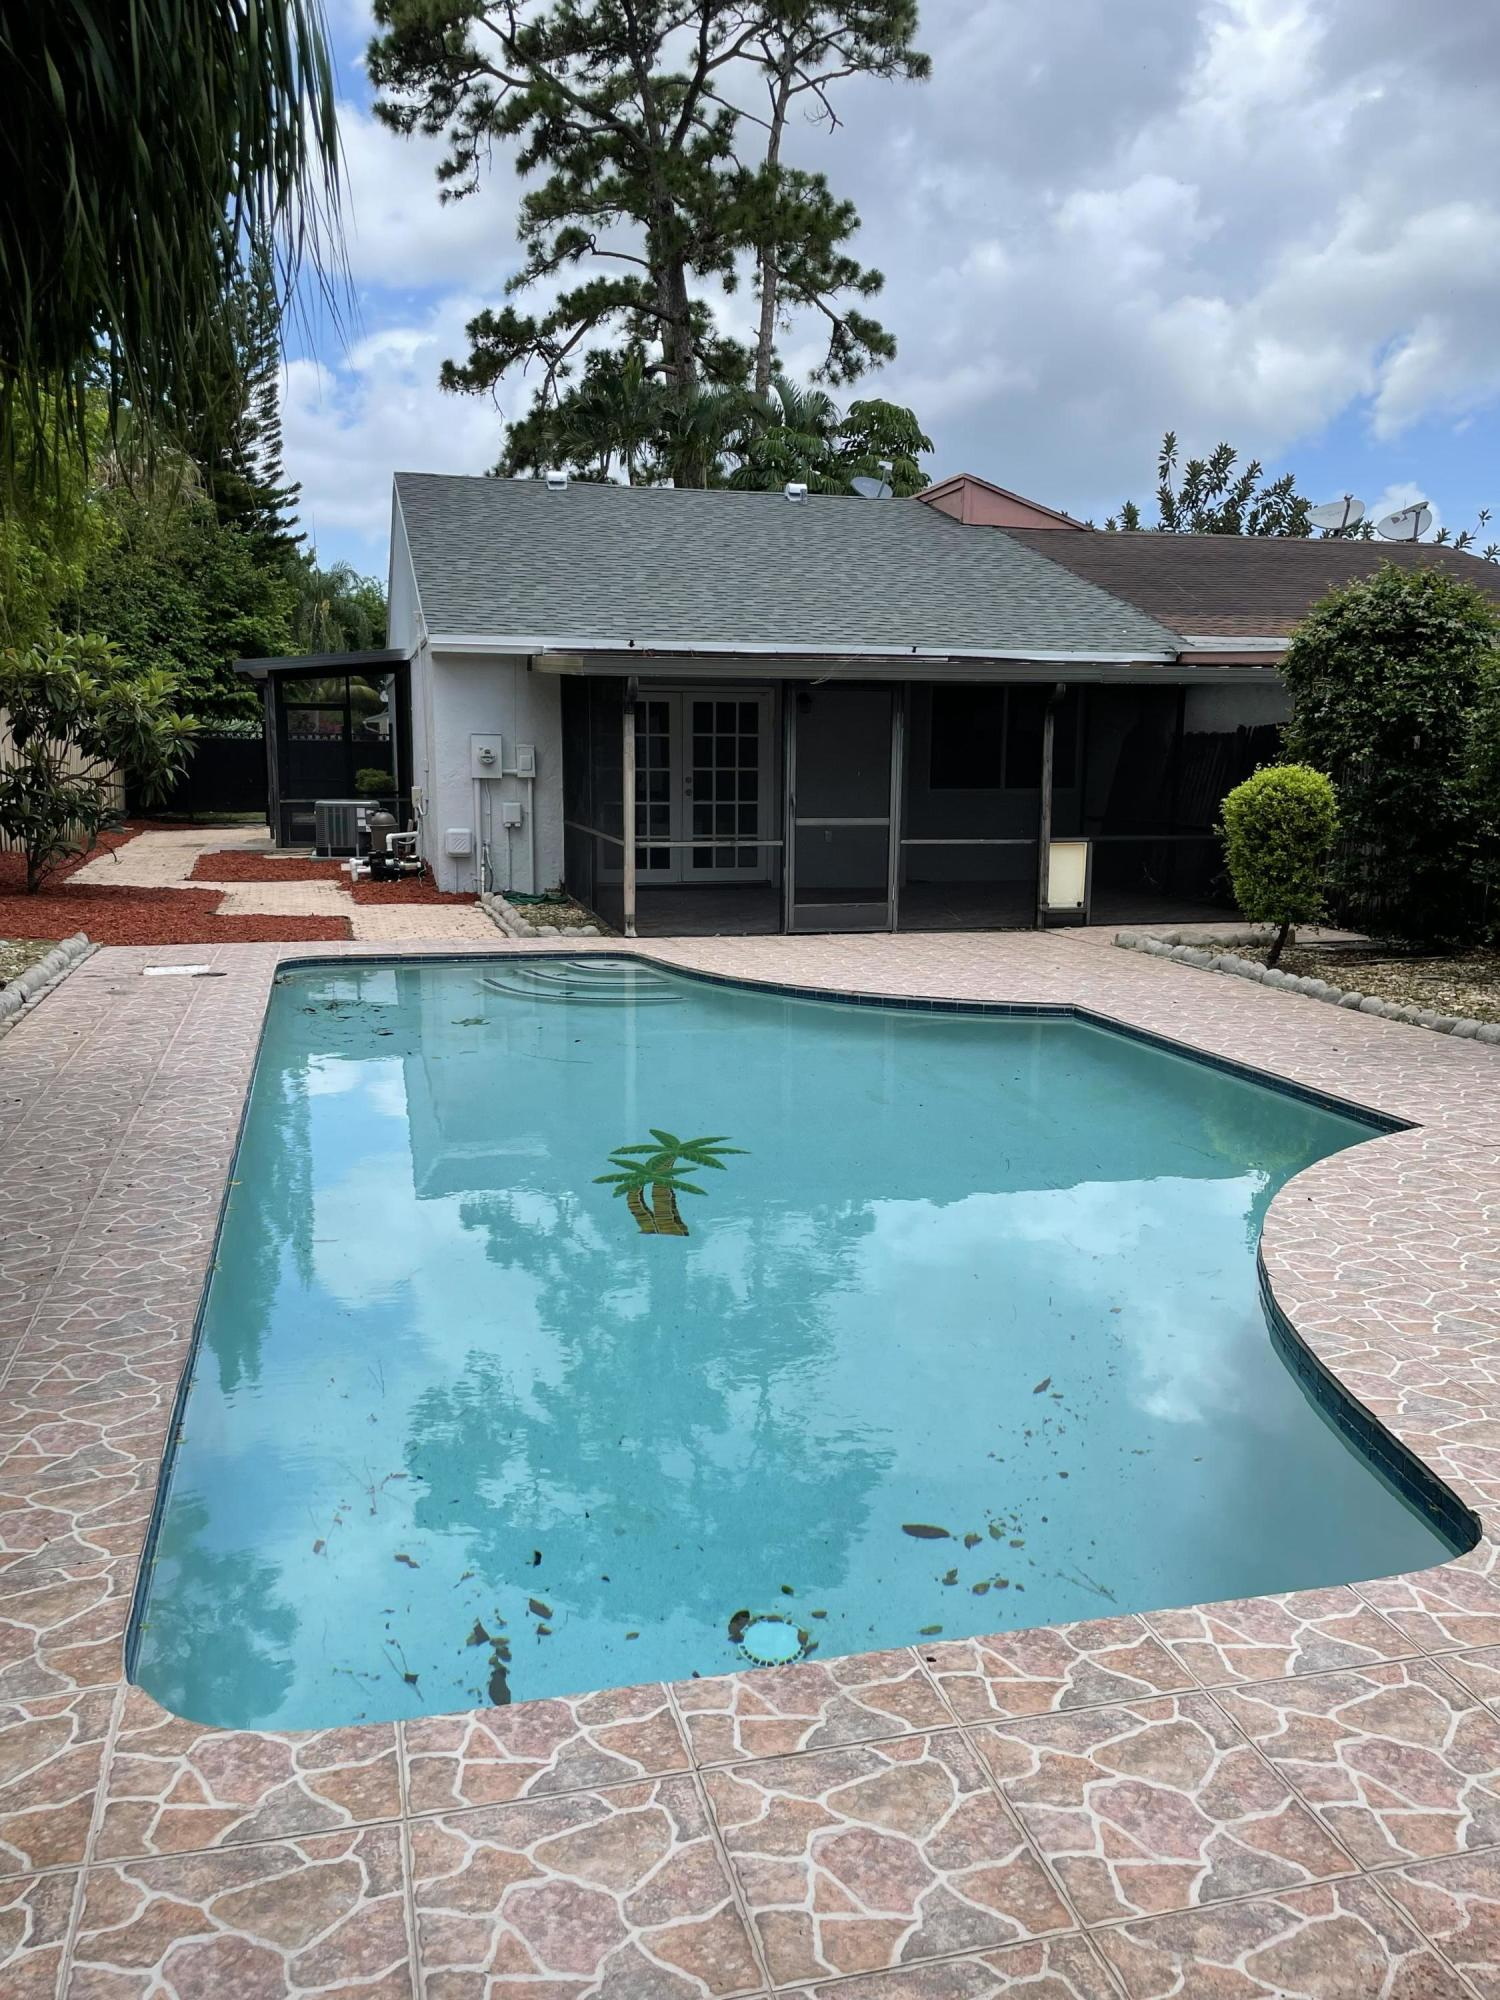 Details for 4602 3rd Drive Nw, Delray Beach, FL 33445